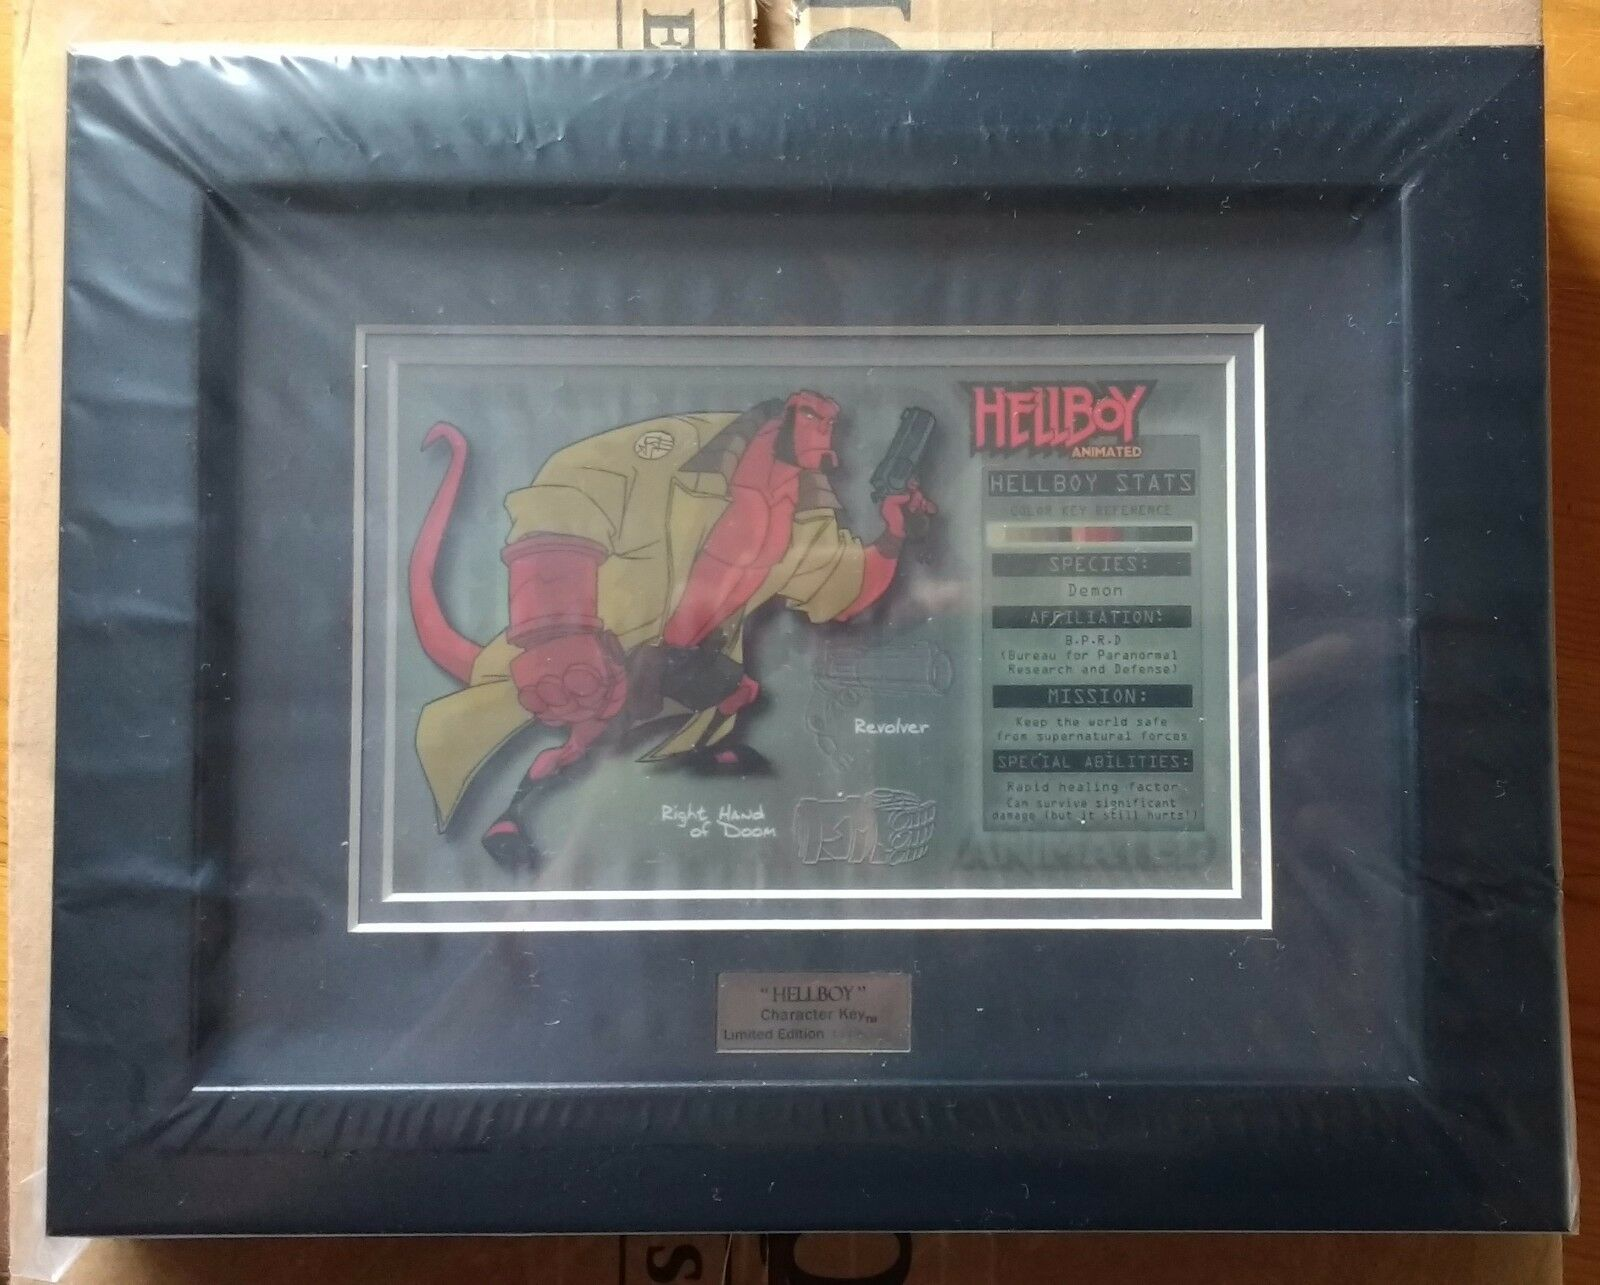 Hellboy Framed Character Key - 111 500 - Sideshow Collectibles Great Number